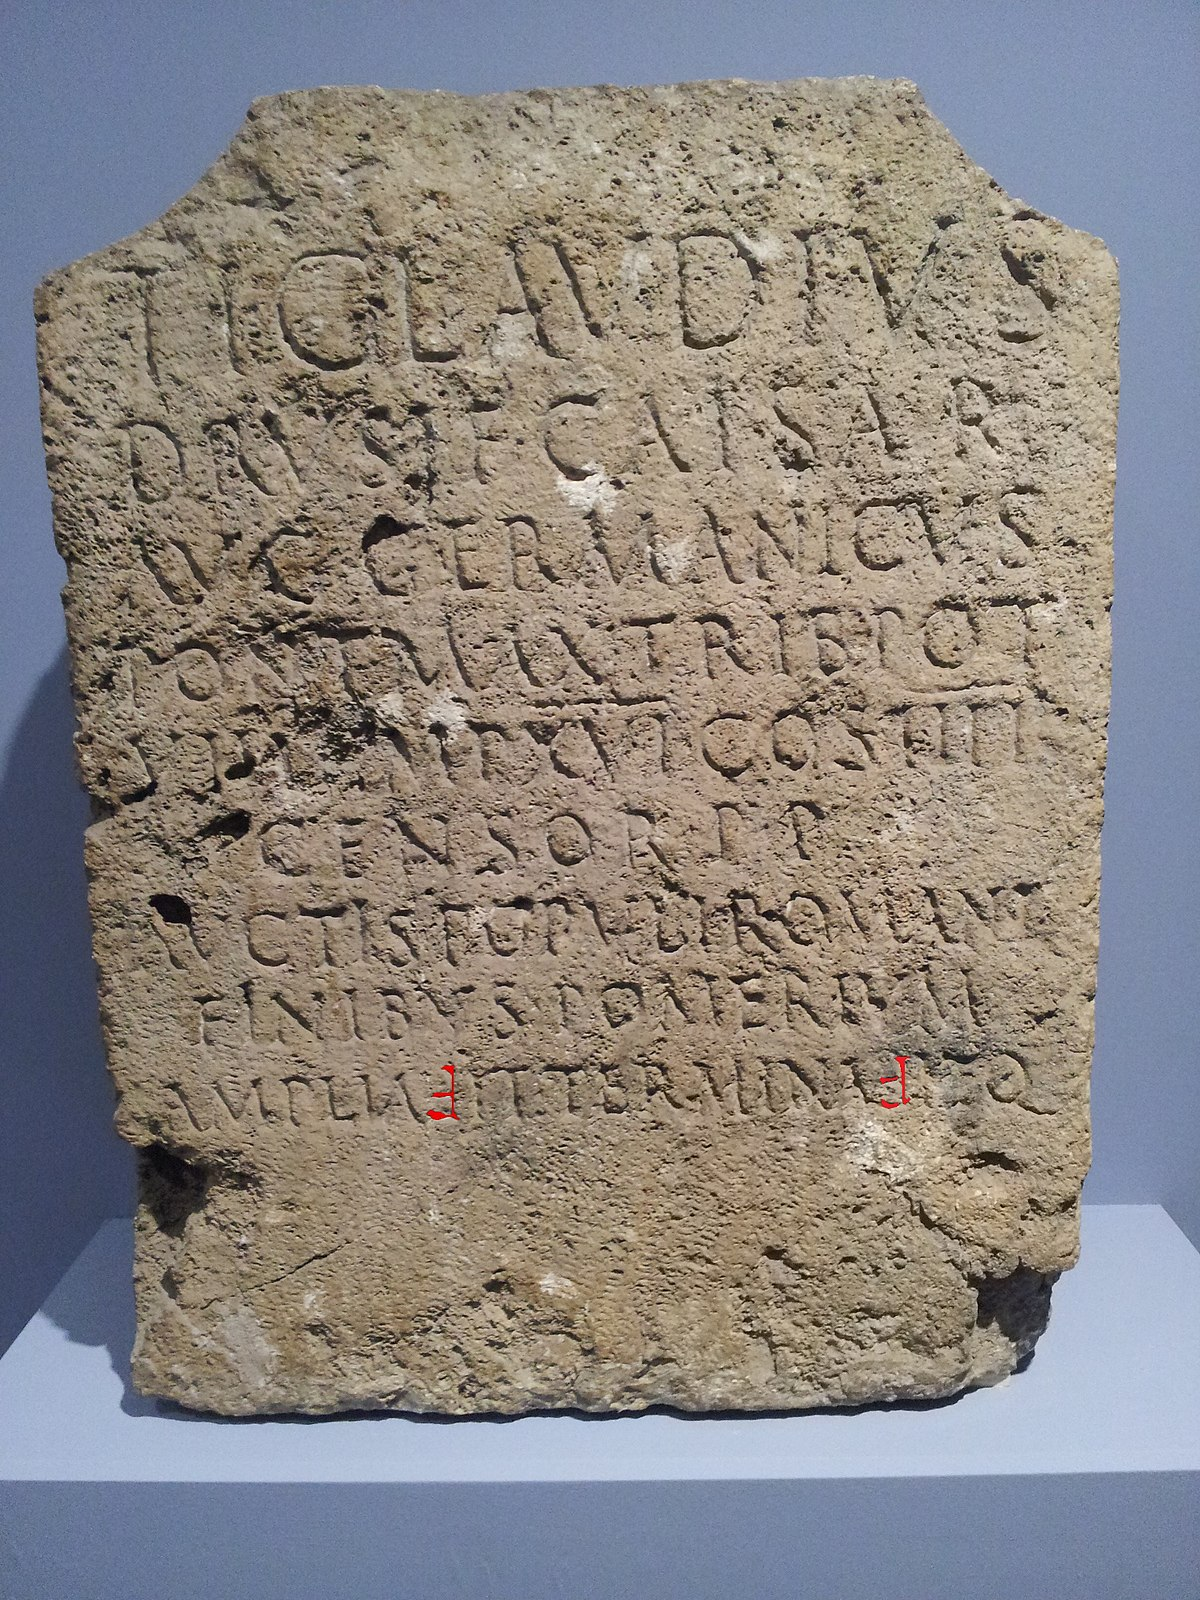 claudian letters